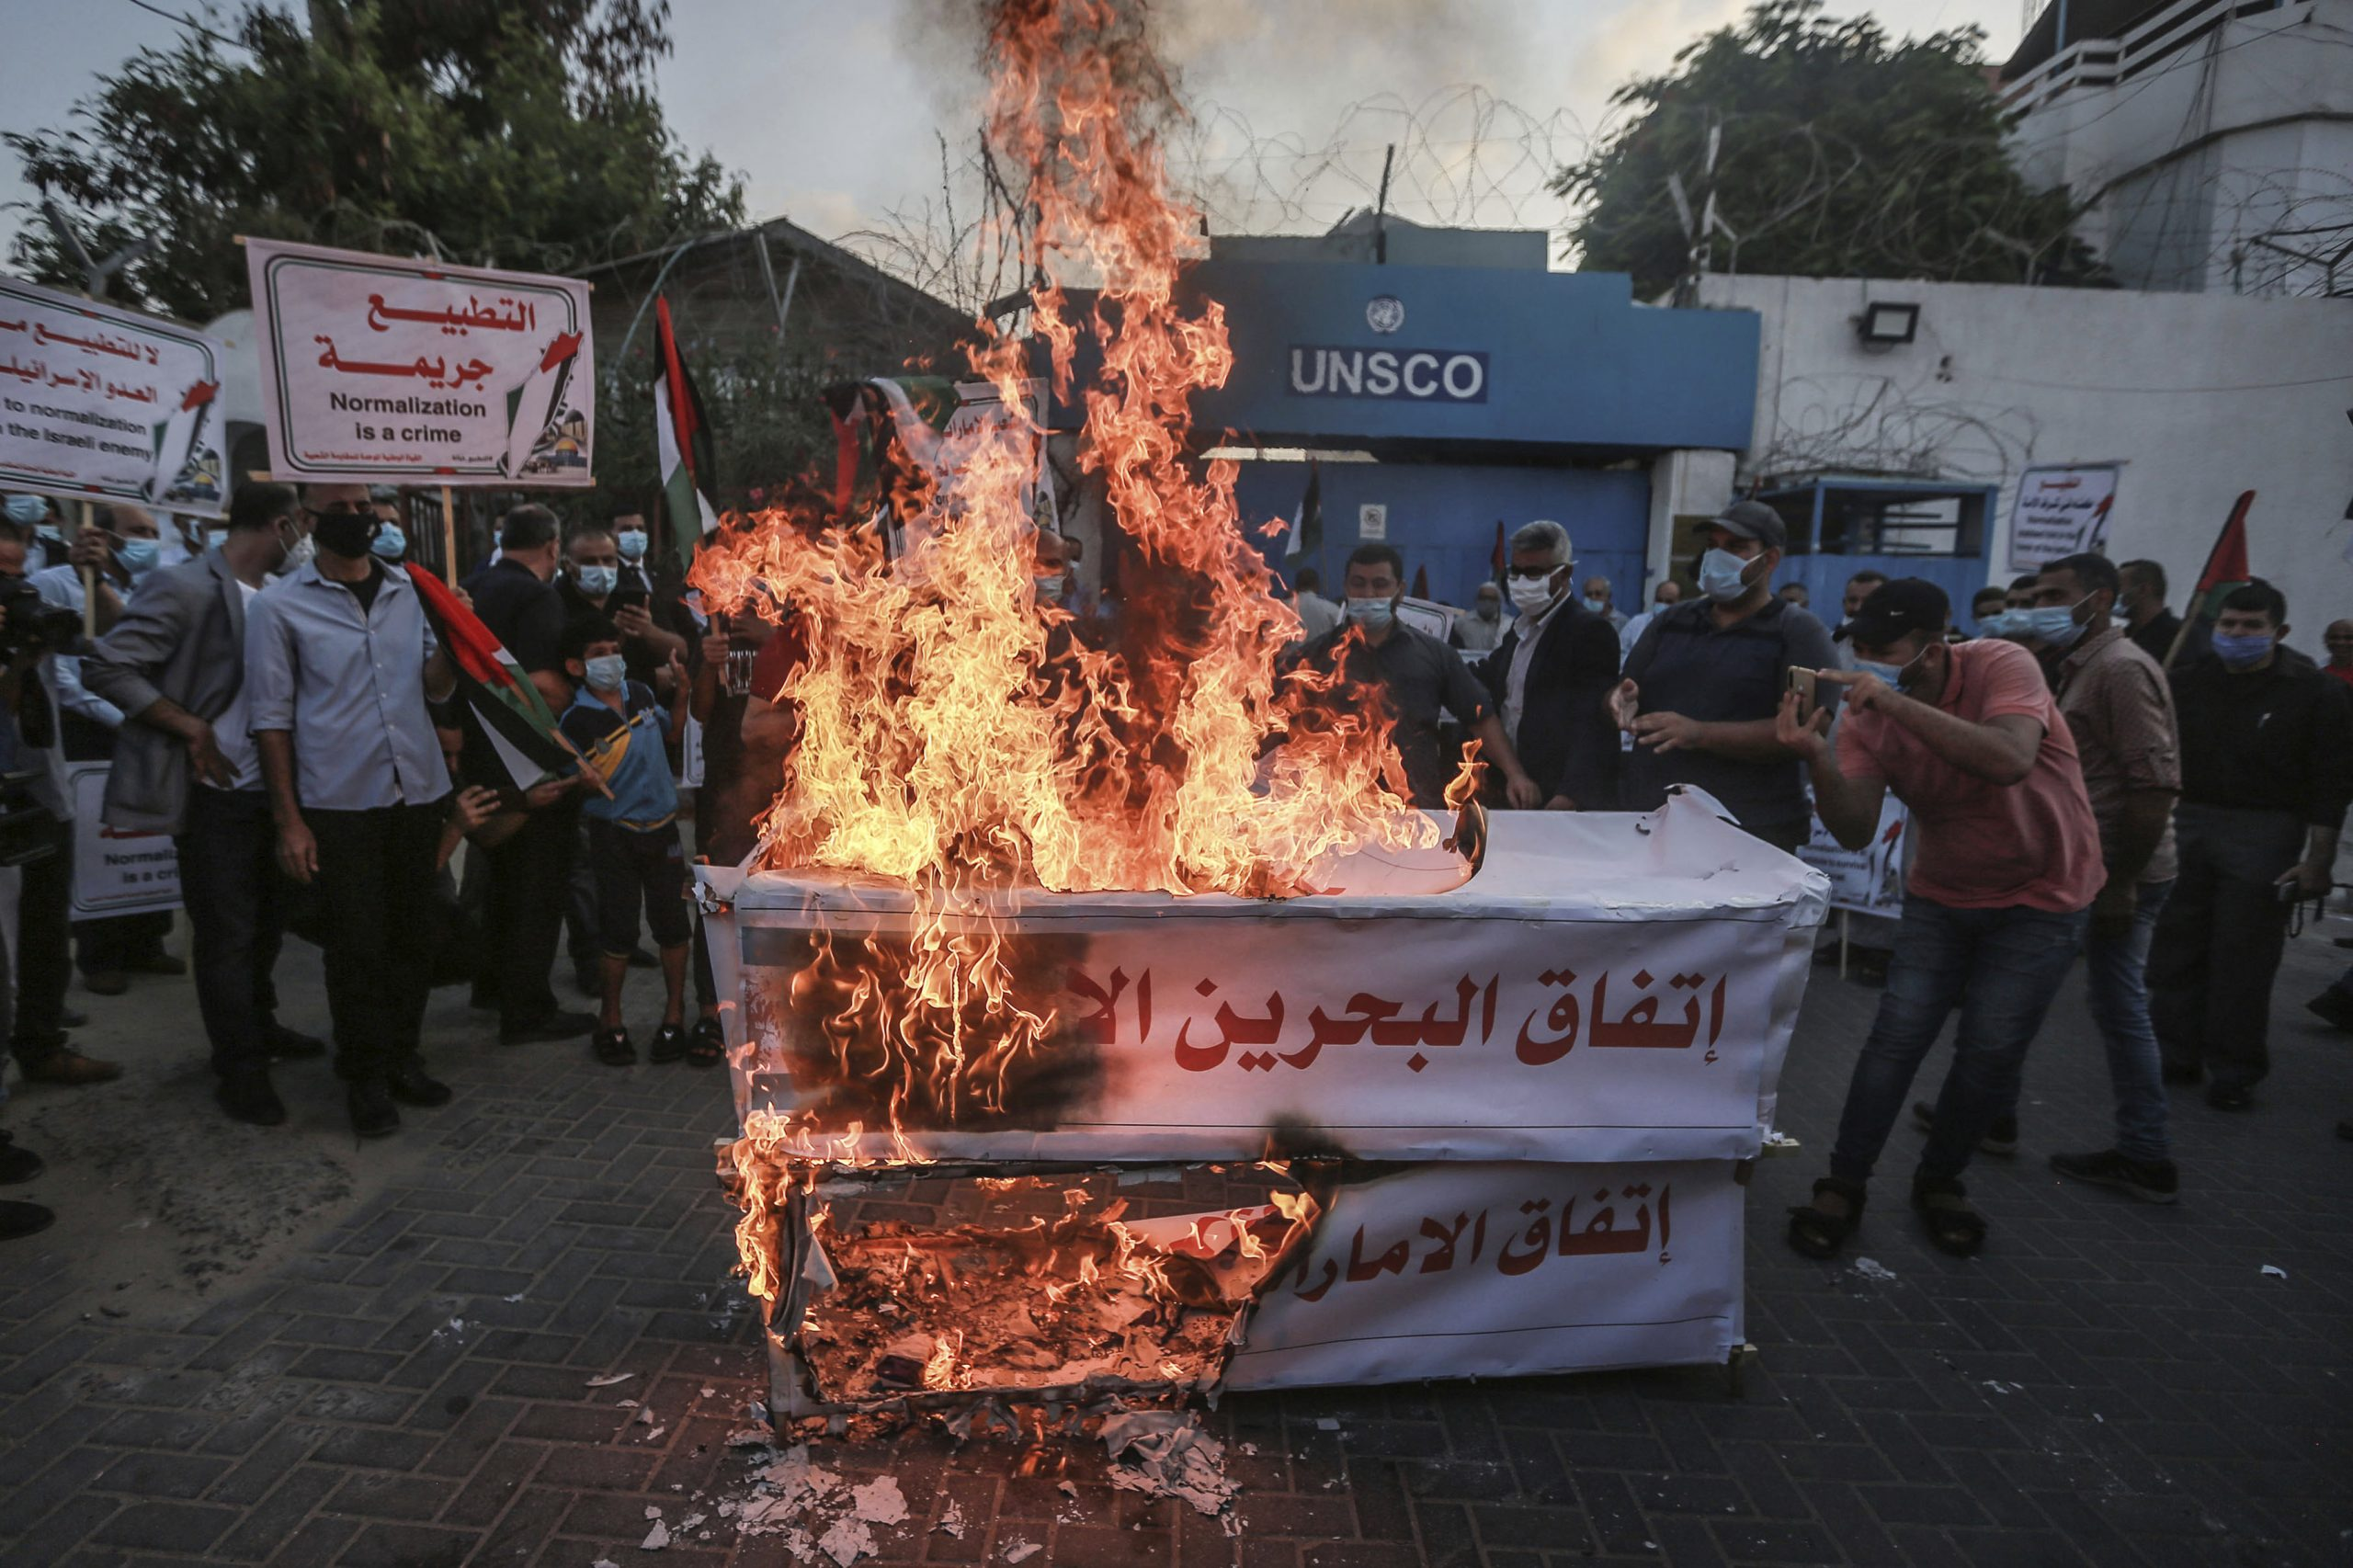 """Palestinians in Gaza protest peace between Arab states and Israel in front of the office of the UN Special Coordinator for the Middle East Peace Process (UNSCO). Signs say """"UAE and Bahrain agreement is occupation"""" and """"Normalization is betrayal."""" Palestinians are among the most vocal opponents of warming relations between Arabs and Jews."""